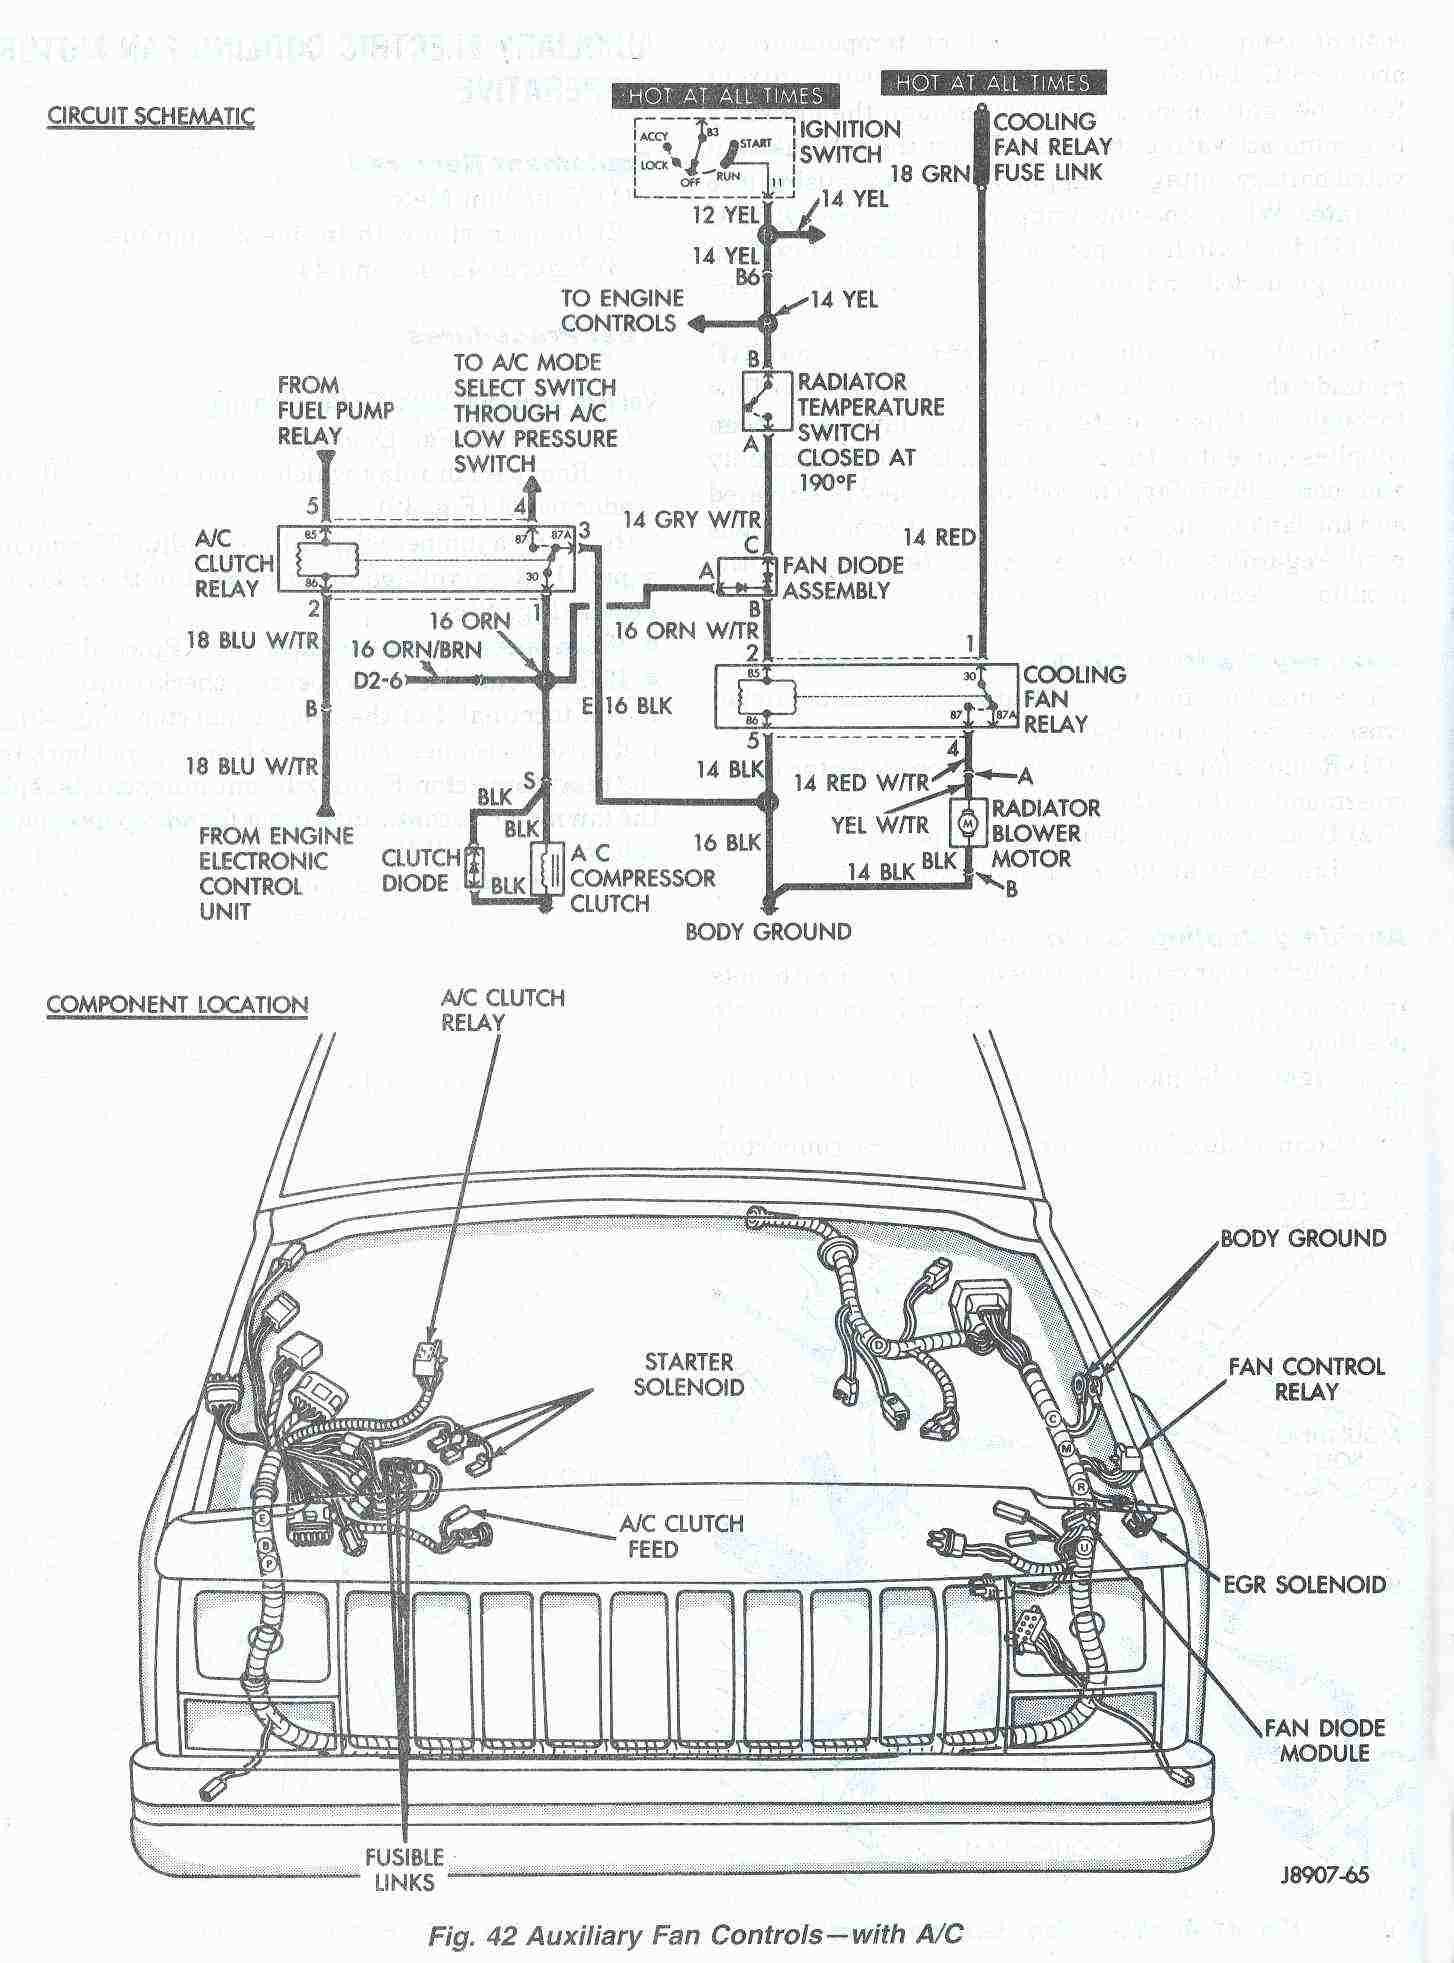 e8c83109bad6c41d377df8c1cb7a8dc4 auxiliary_fan_schematic_fig_42 jpg (1454�1963) cherokee diagrams 1999 jeep cherokee wiring schematic at readyjetset.co